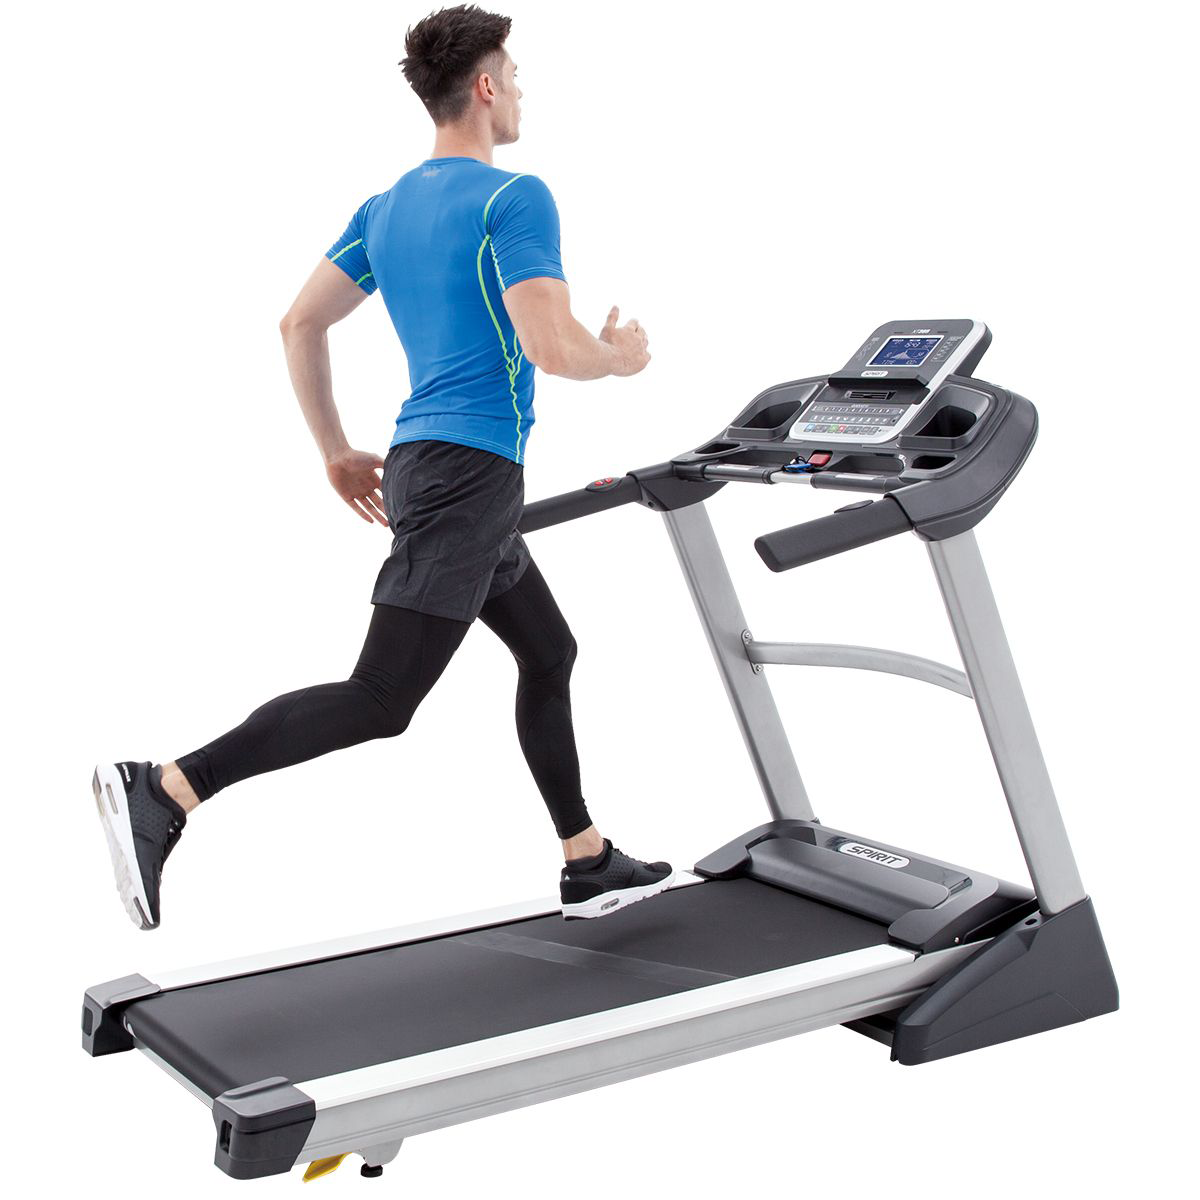 Side view of the Spirit Fitness XT385 treadmill in inclined position with a male model exercising wearing a telemetric chest strap, no top, and black shorts